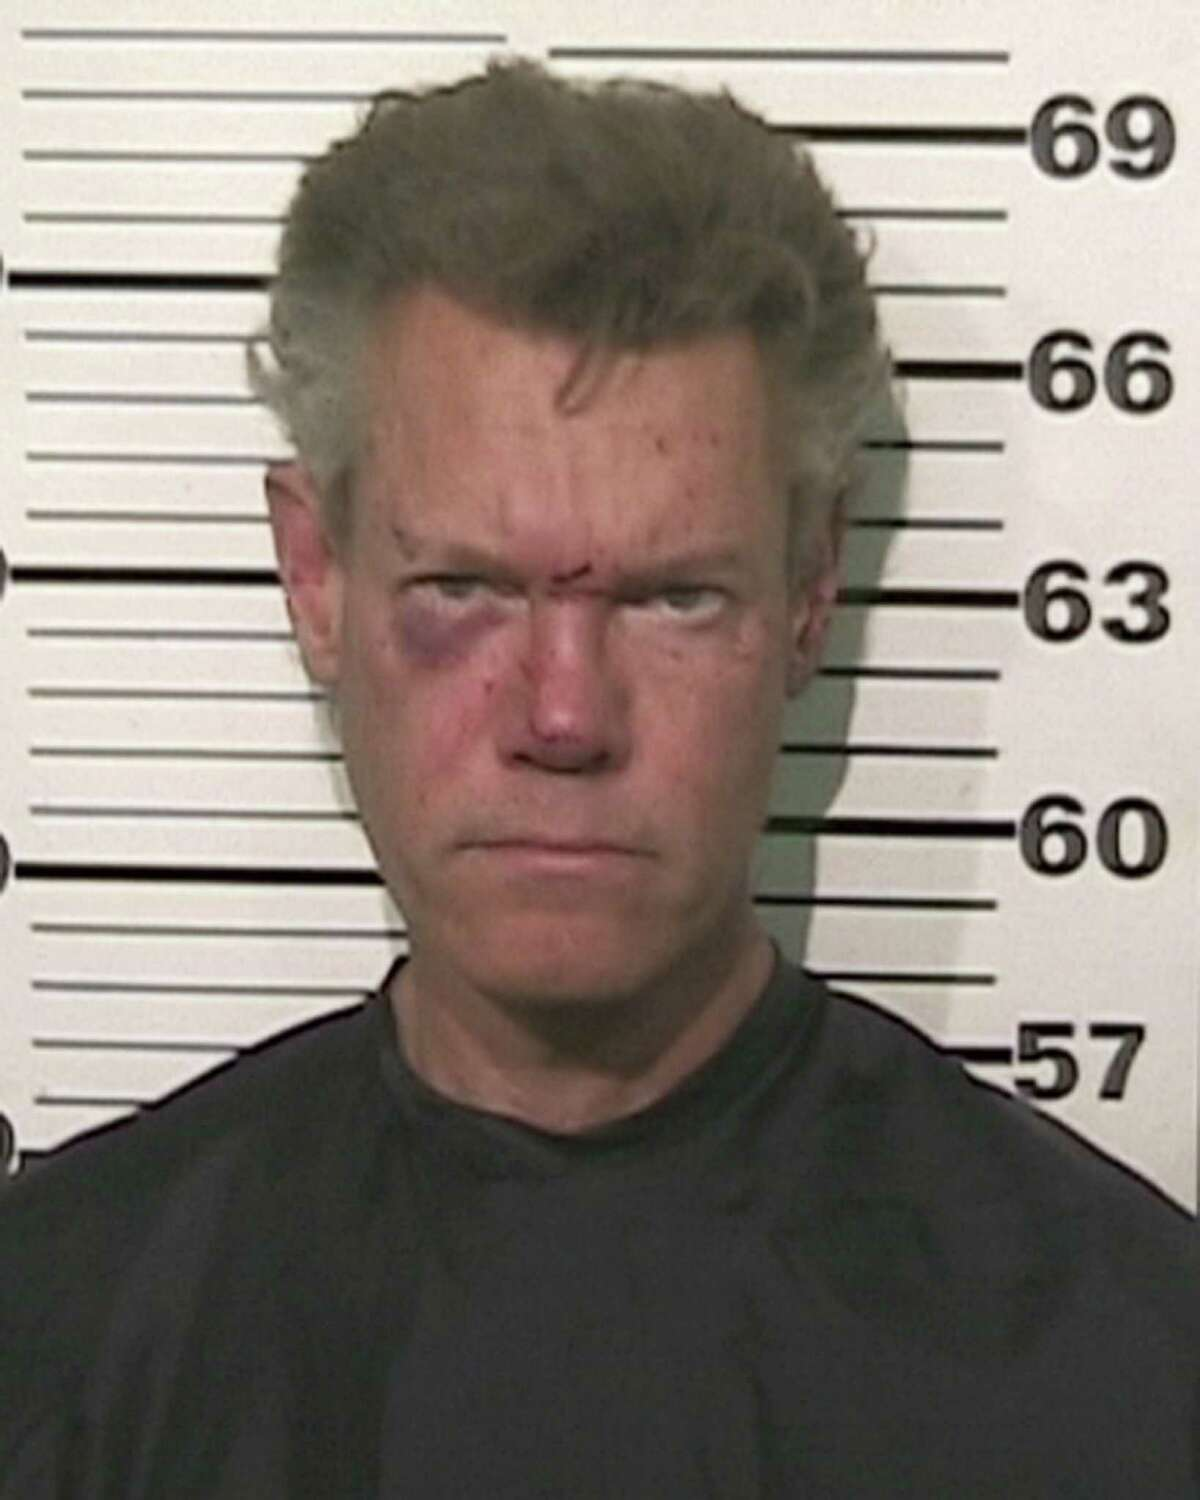 This photo provided by the Grayson County, Texas, Sheriff?s Office shows Country singer Randy Travis who has been charged with driving while intoxicated. Travis was released on $21,500 bond Wednesday morning, Aug. 8, 2012 from the Grayson County jail in Sherman, Texas, about 60 miles north of Dallas. (AP Photo/Grayson County Sheriff's Office)